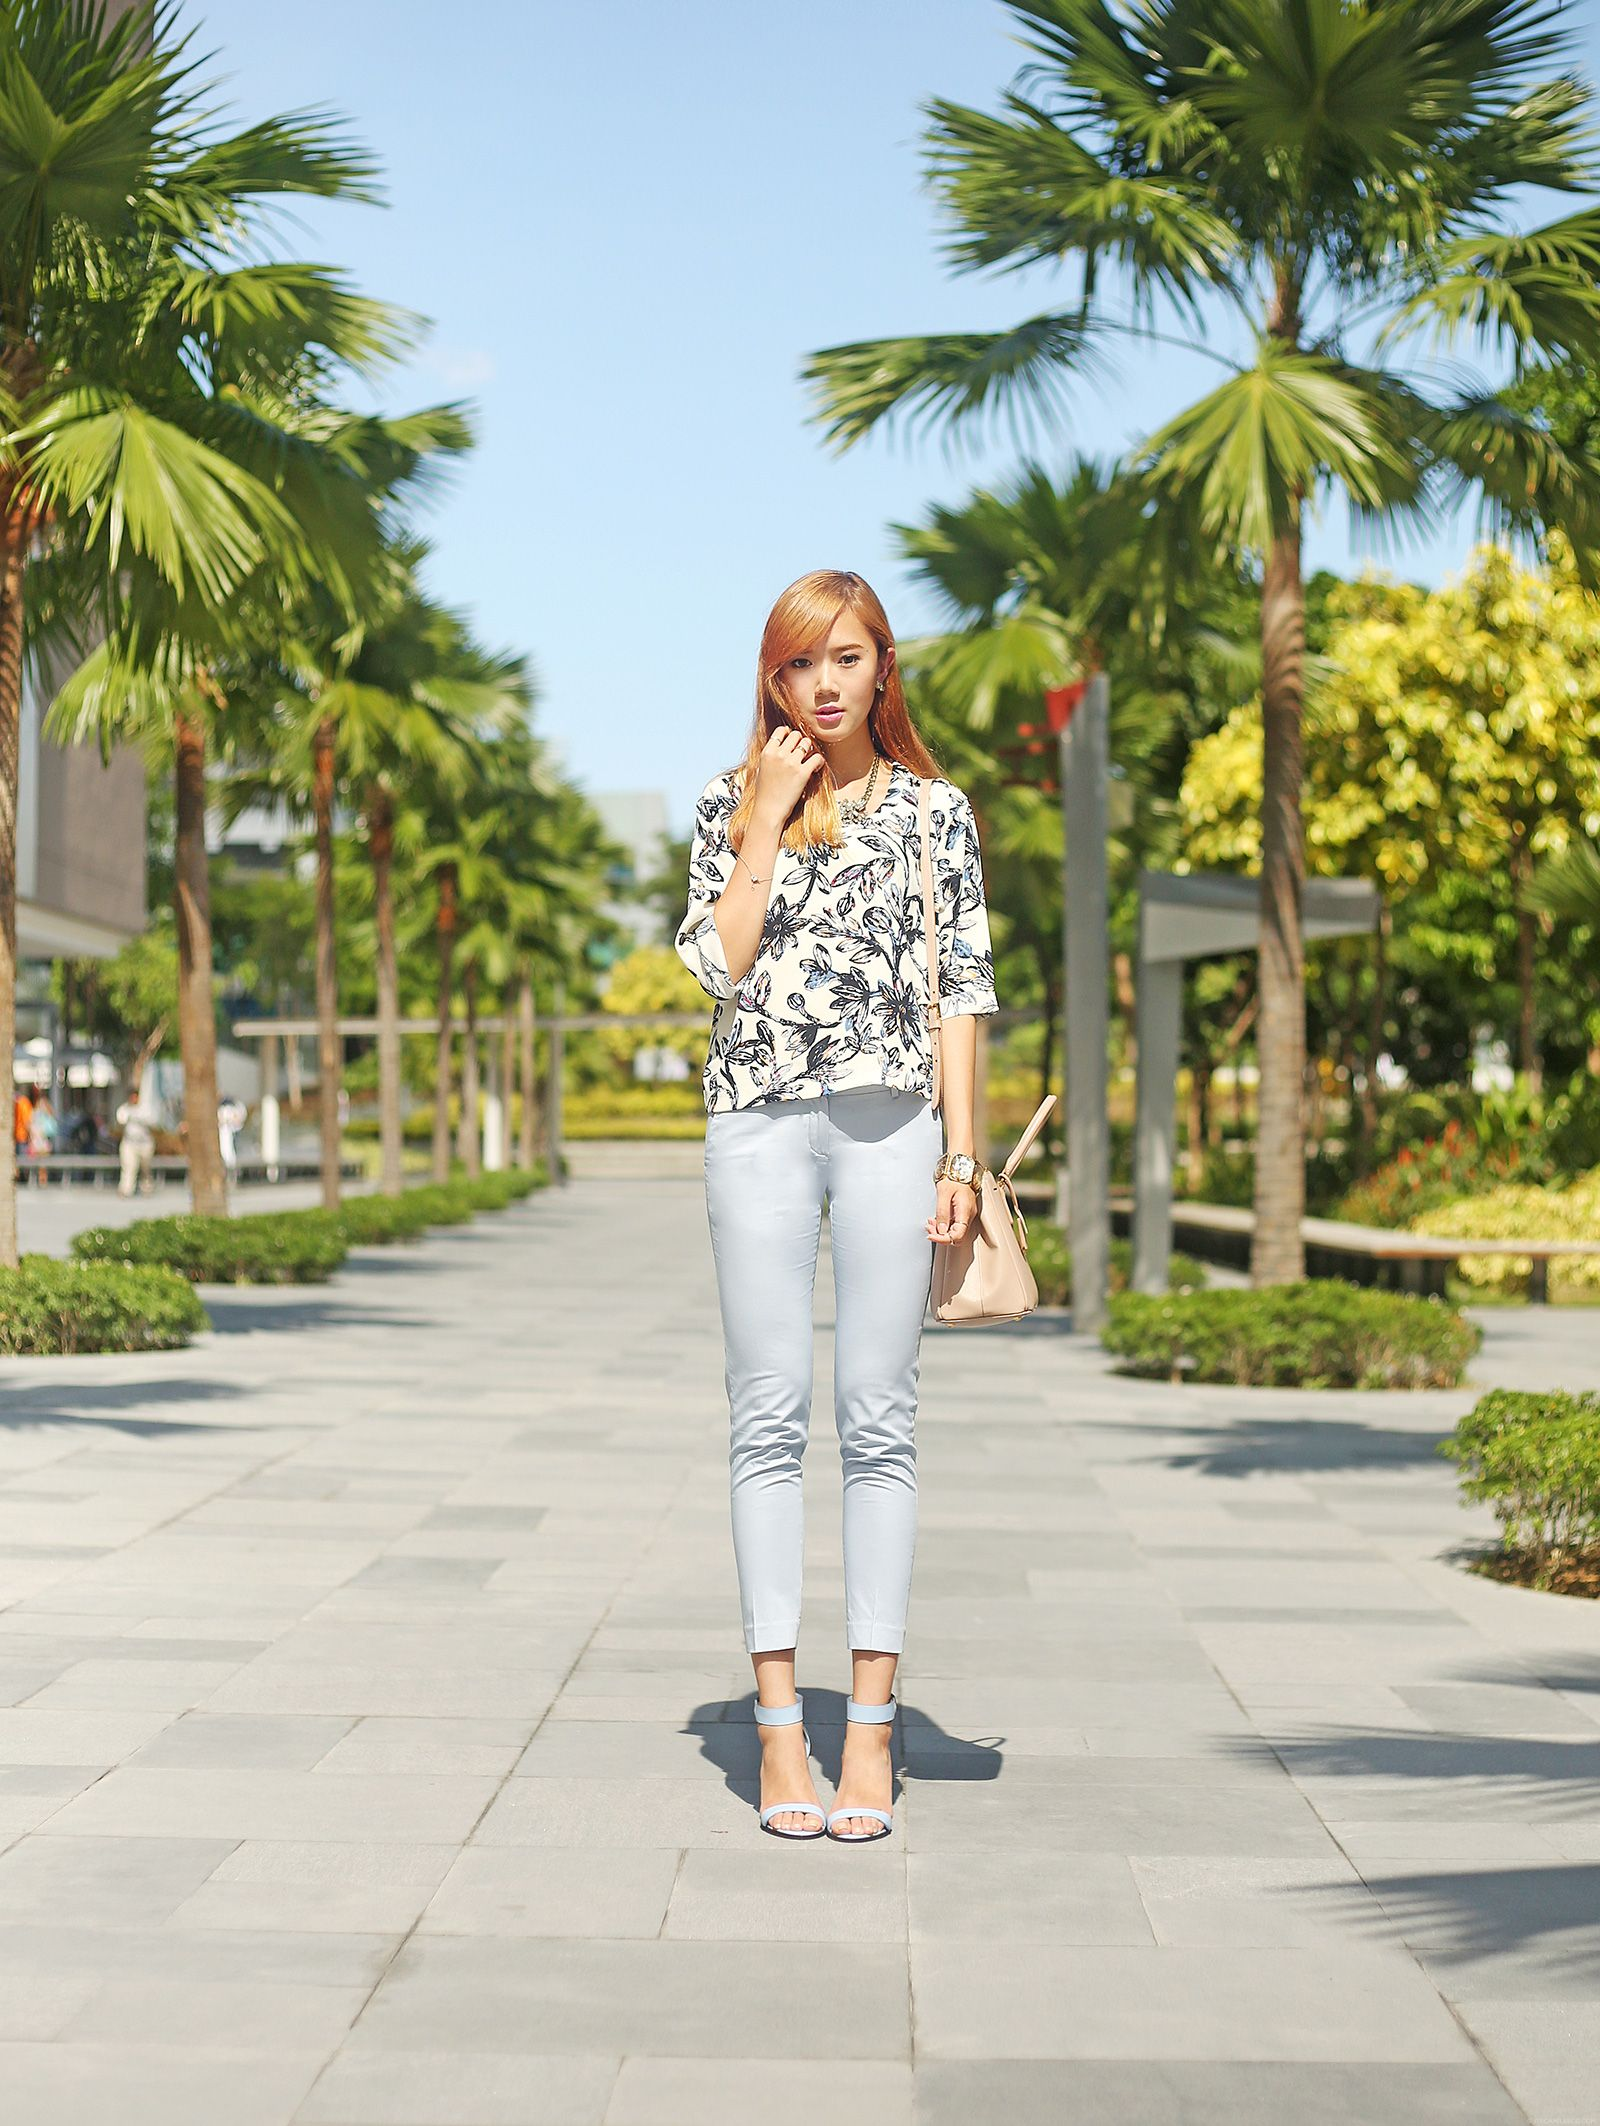 Casual Dressing Featuring 6ks, Giordano Concepts, Prada and More